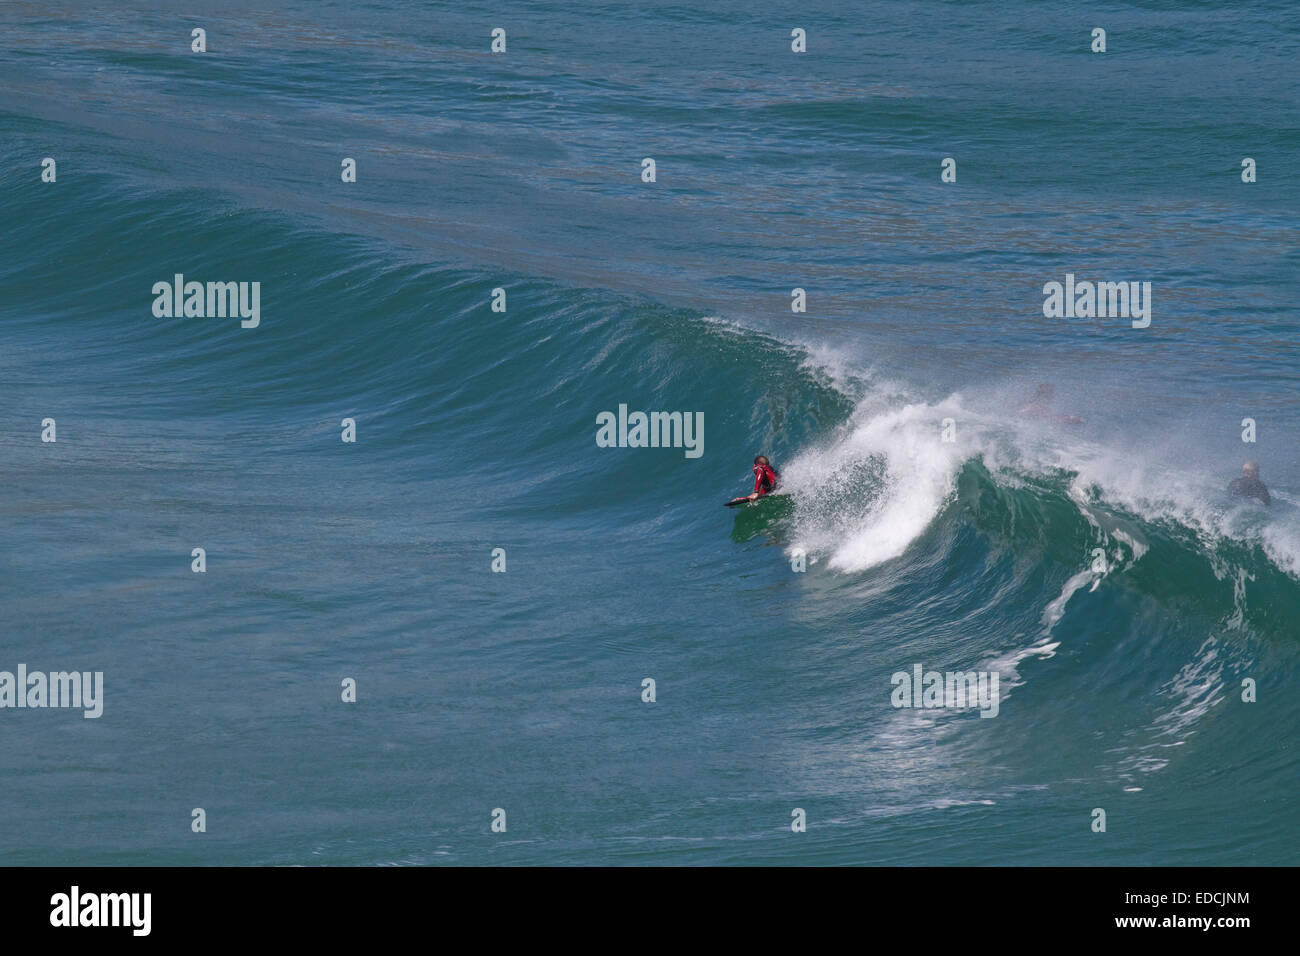 Surfer. Ocean. Waves. Bettysbaai, Betty's Bay. Western Cape. South Africa. Tourism. Kleinmond. Sea. Holiday destination. Stock Photo